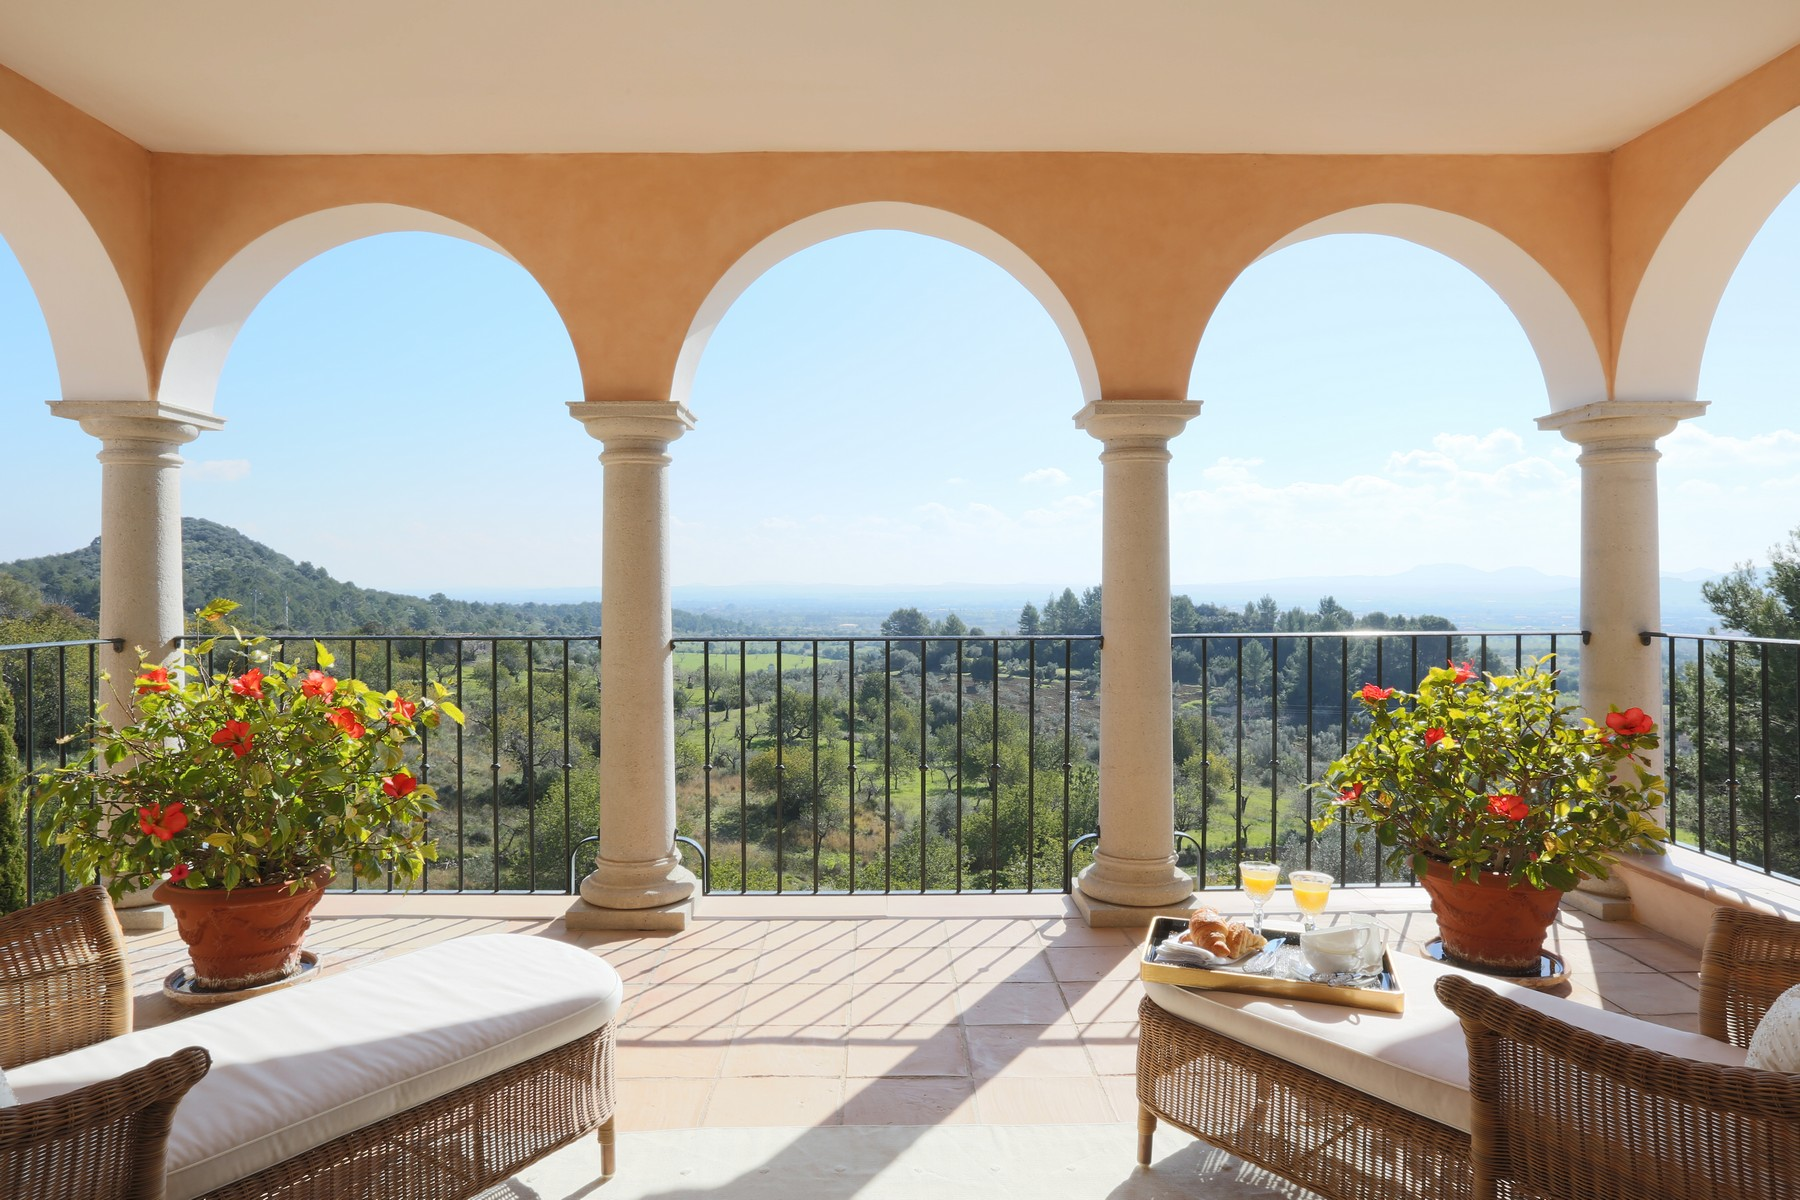 Single Family Home for Rent at Country Estate with stone façade and view in Alaró Alaro, Mallorca, Spain